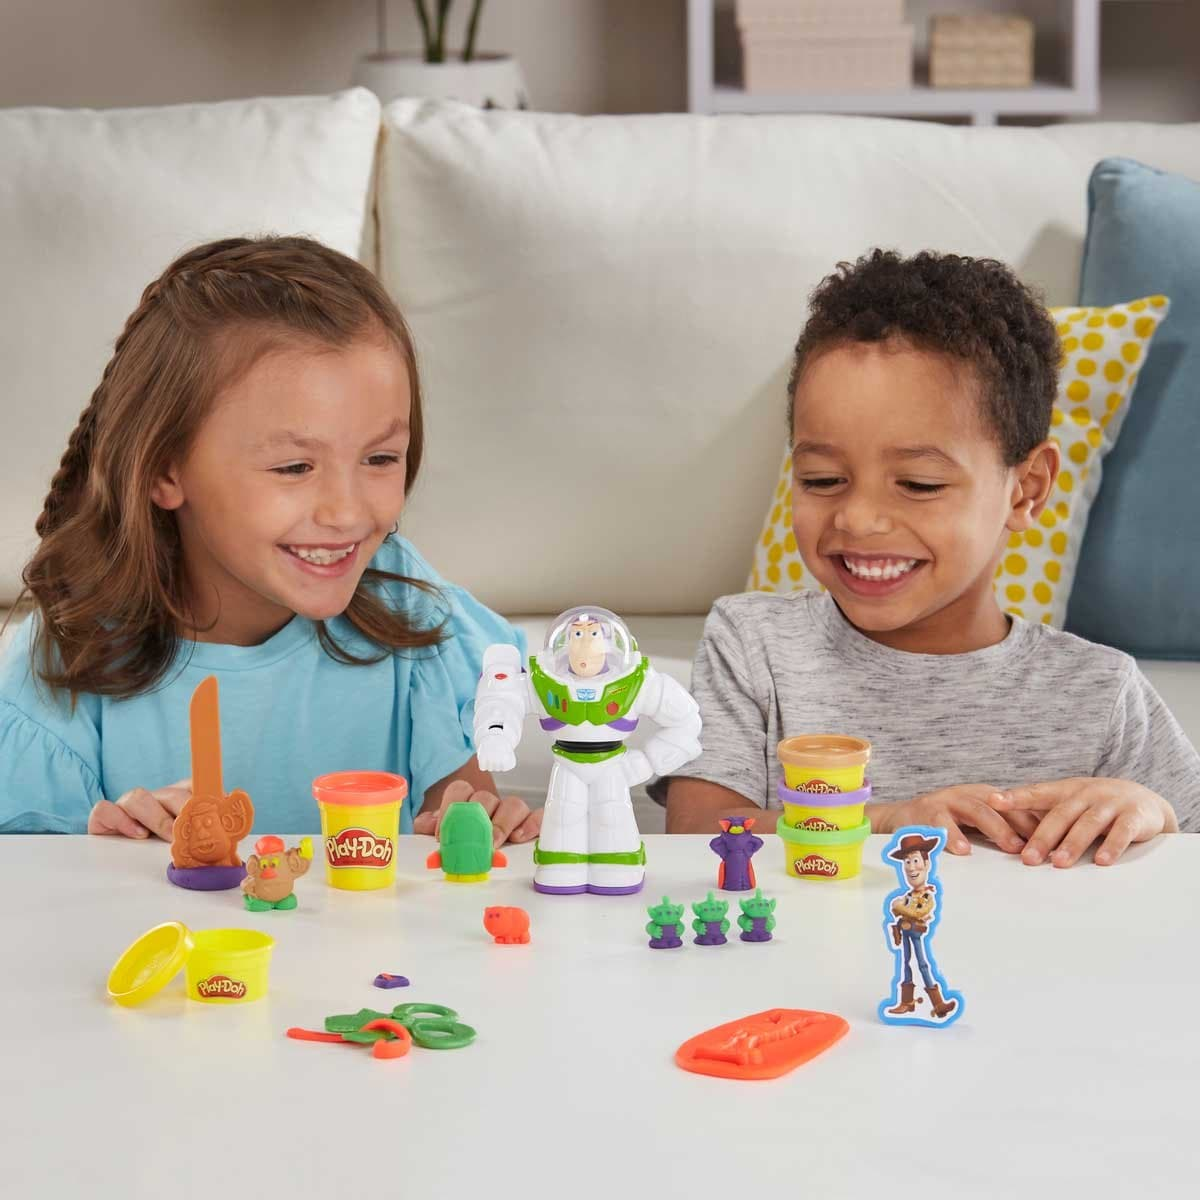 Buzz Light Year Juego de Play-Doh Toy Story 4 Hasbro